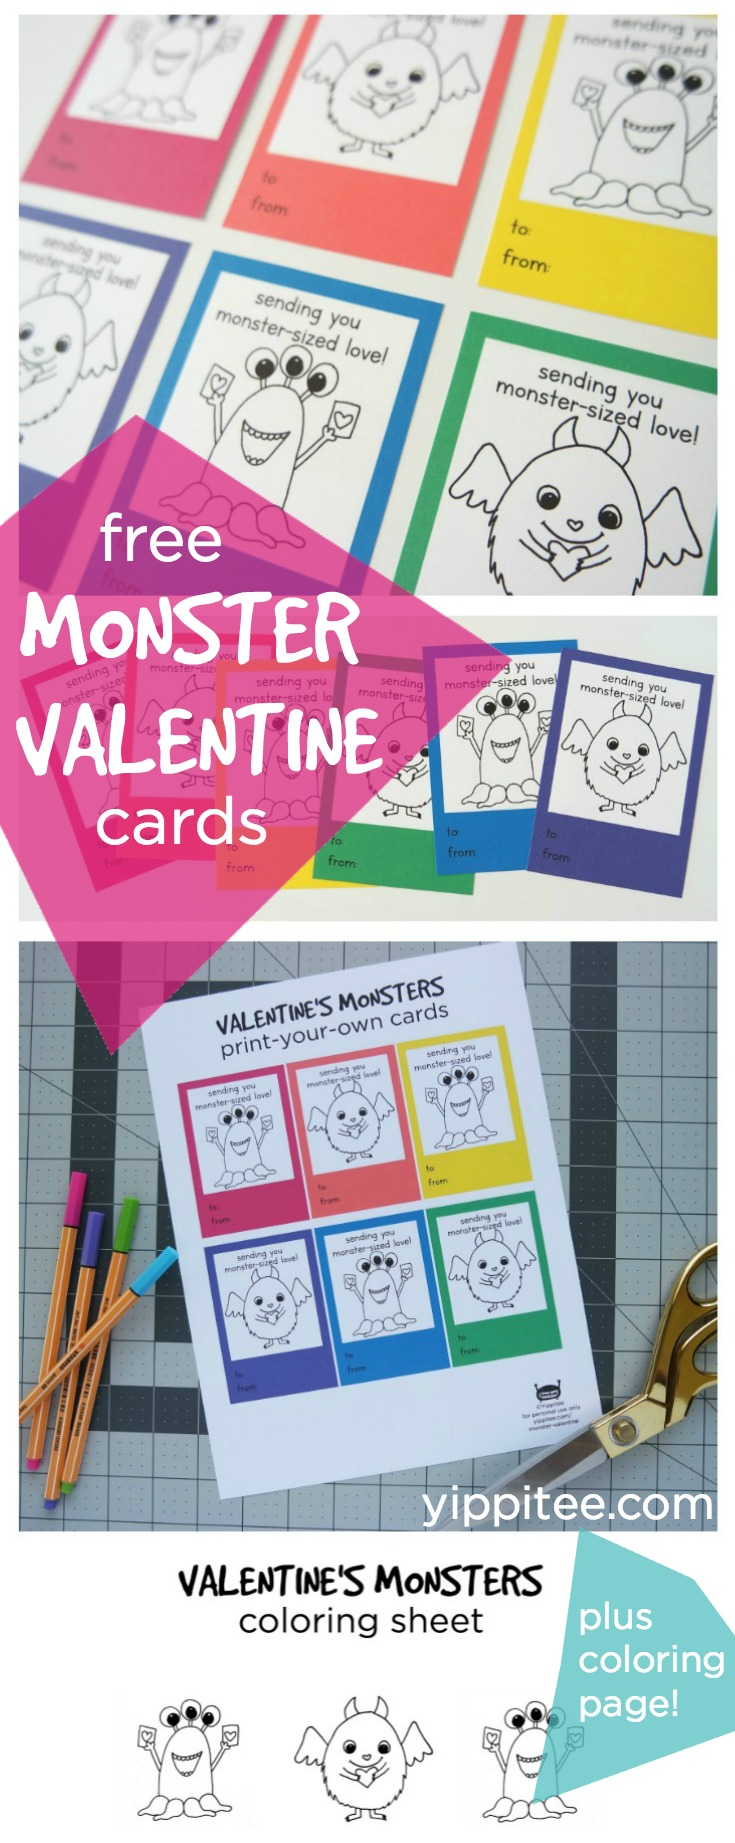 Adorable monster Valentine cards you can print-at-home and let your little ones color in before giving to their friends. Perfect by themselves or attach any of the cute monster Valentine goodies listed in this post for an extra sweet gift.